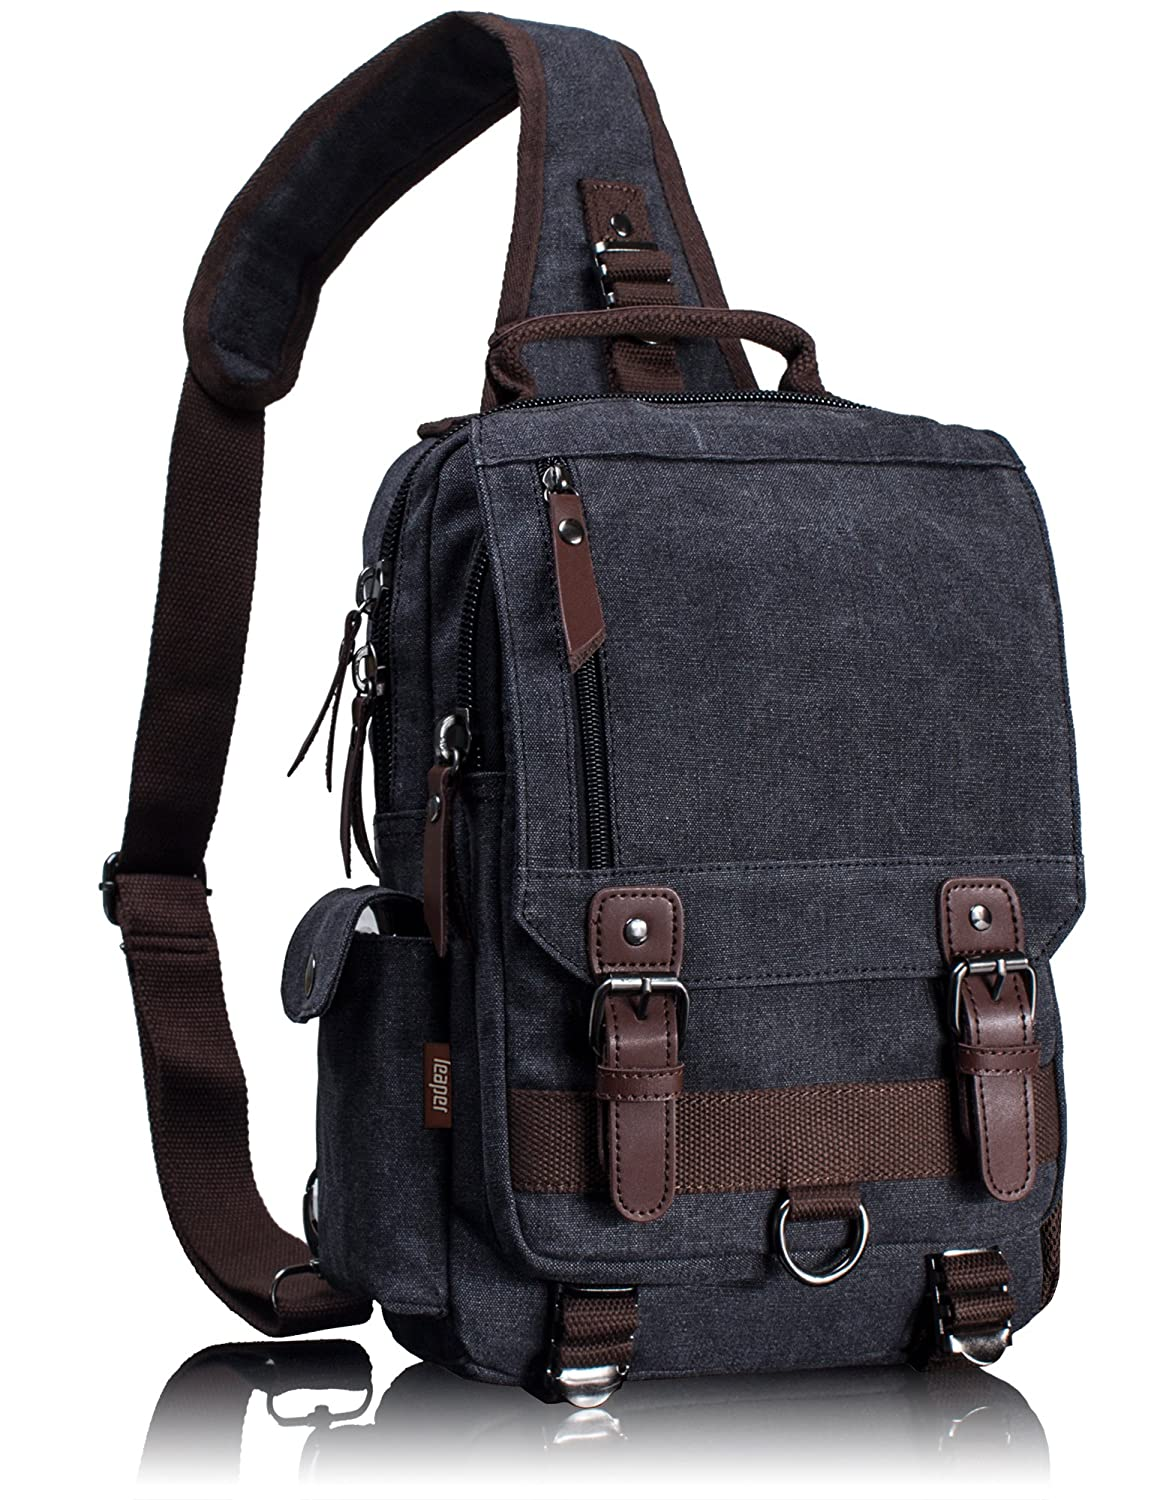 0dc22f967730 on sale Leaper Cross Body Messenger Bag Shoulder Backpack Travel ...